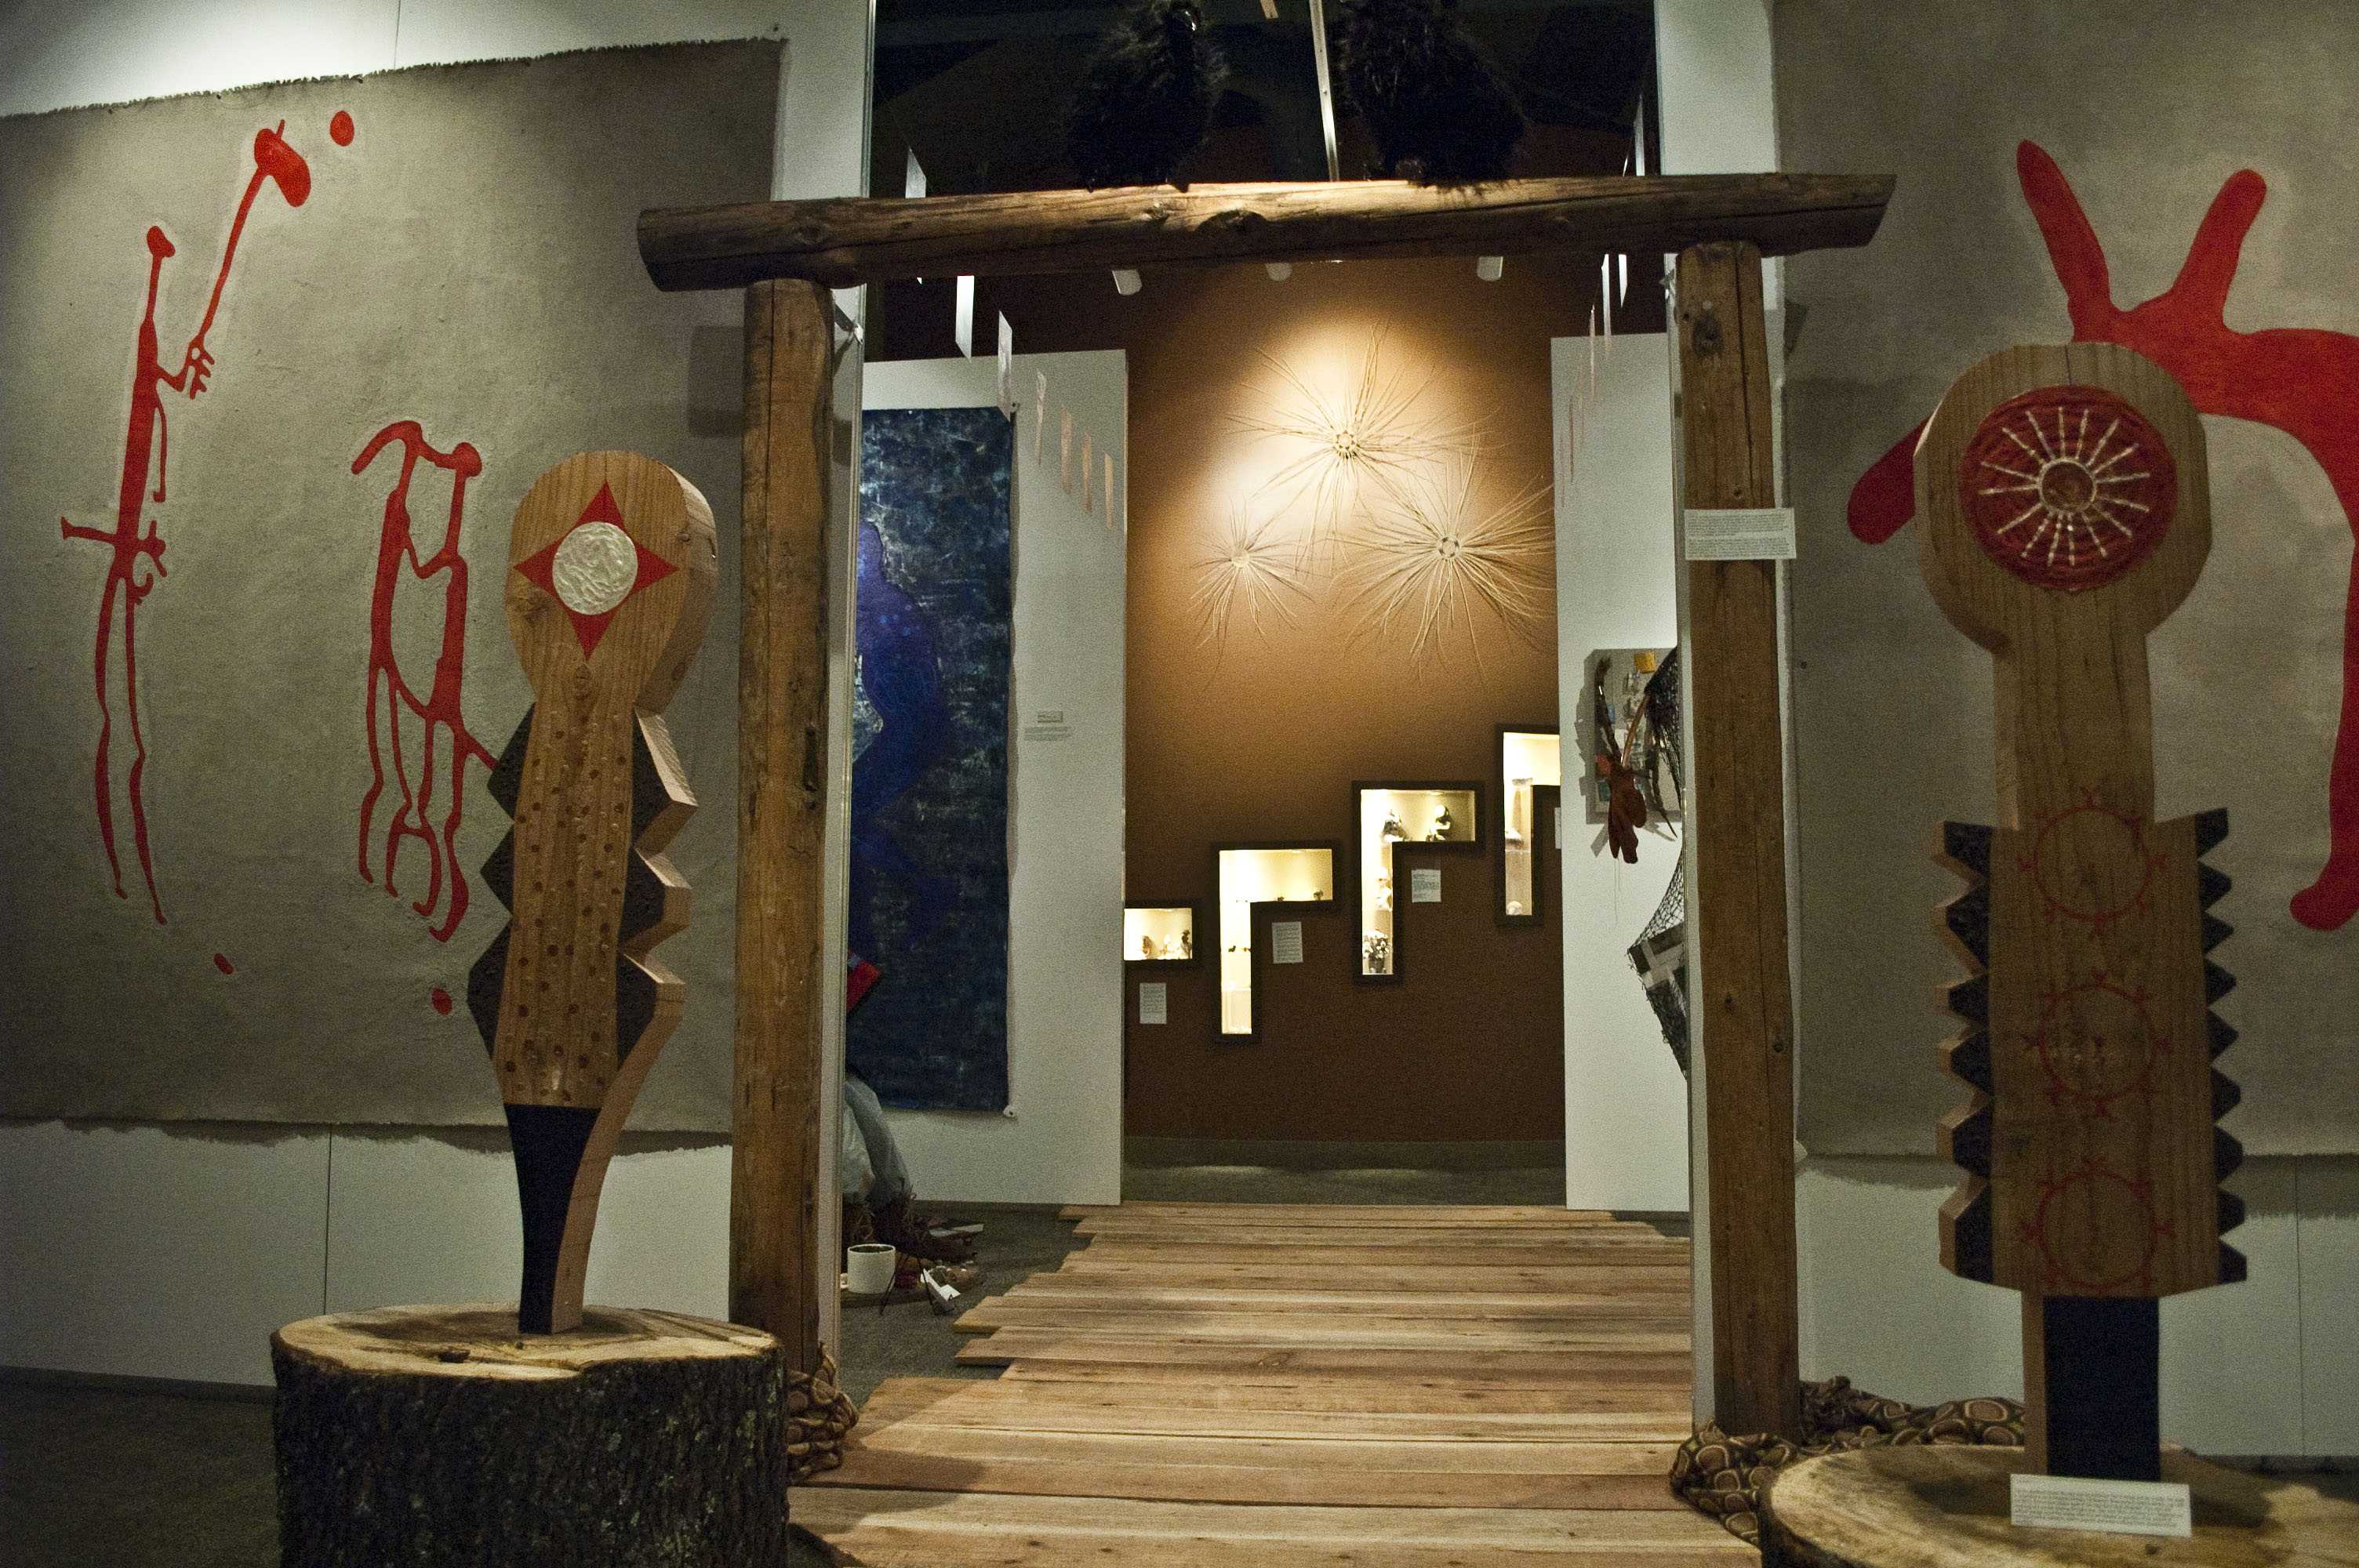 The Scandanavian Rock Art exibit displays art from two different regions in Sweden dating back from 1,500-5,000 B.C. and 3,500-2,500 B.C. The exibit is free to students.